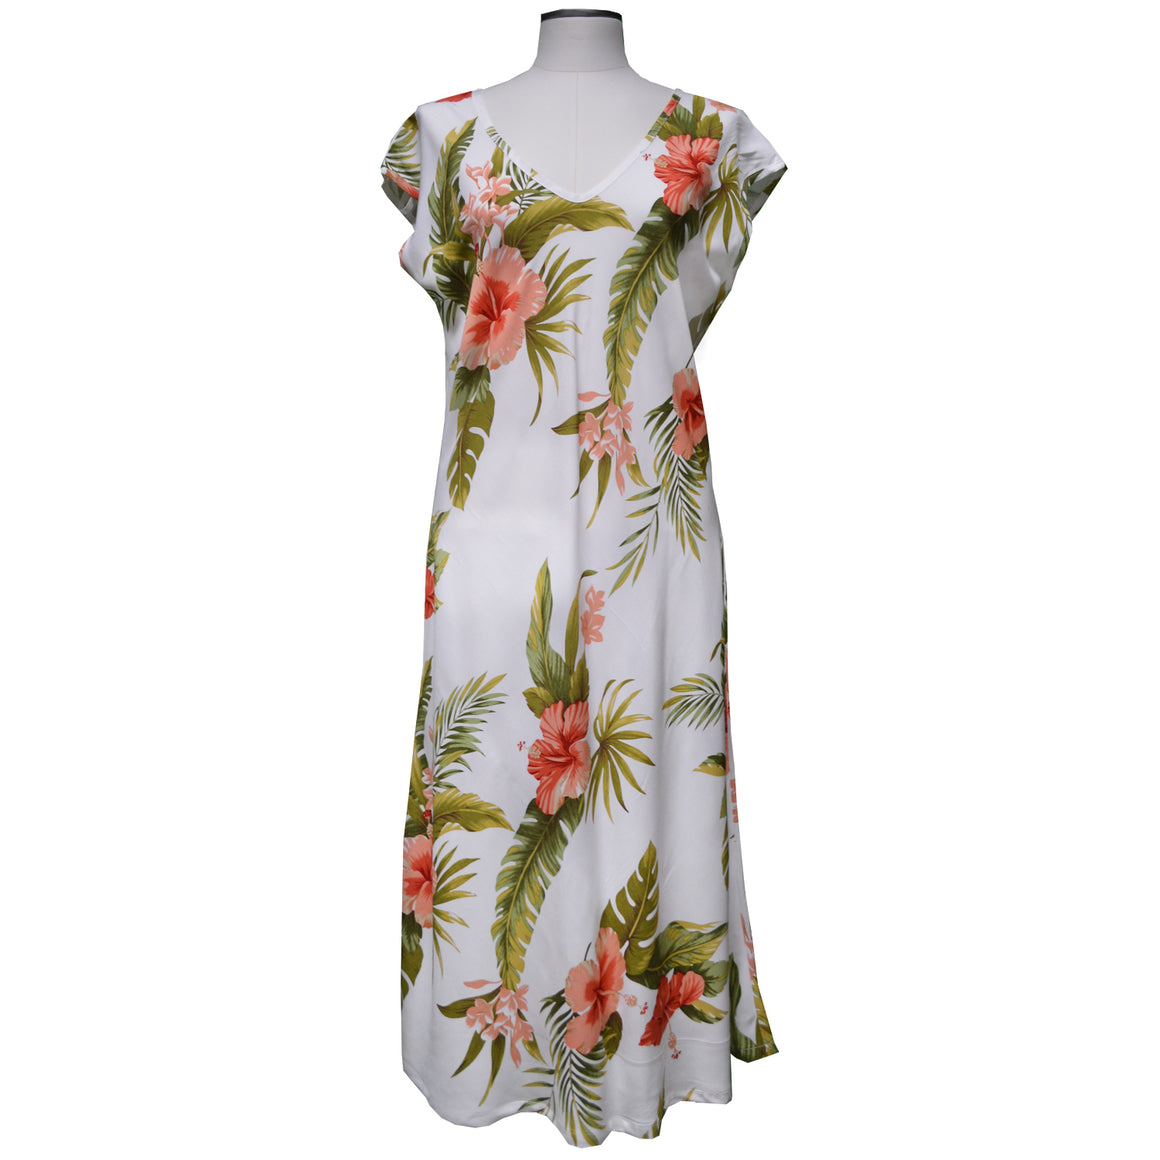 Hana Hibiscus White Mid-Length Dress with Cap Sleeves